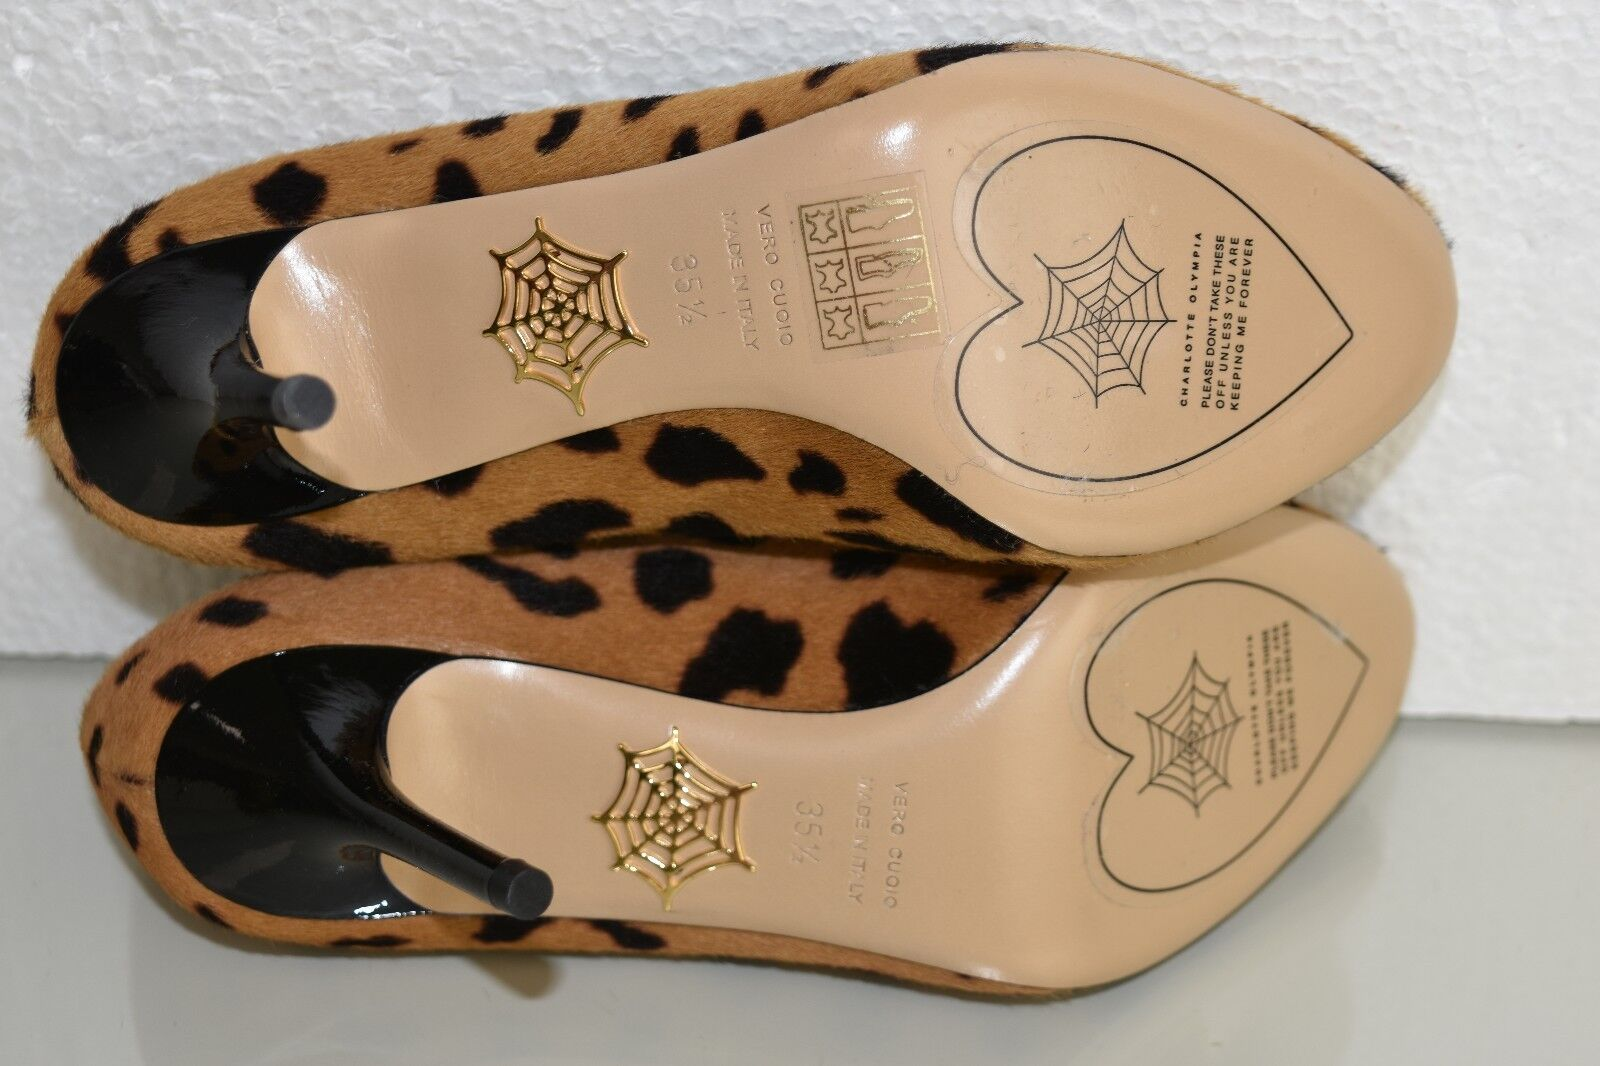 895 New Pumps Charlotte Olympia KITTY 85 HYENA Pony Pumps New Heels Leopard schuhe 35.5 912acb